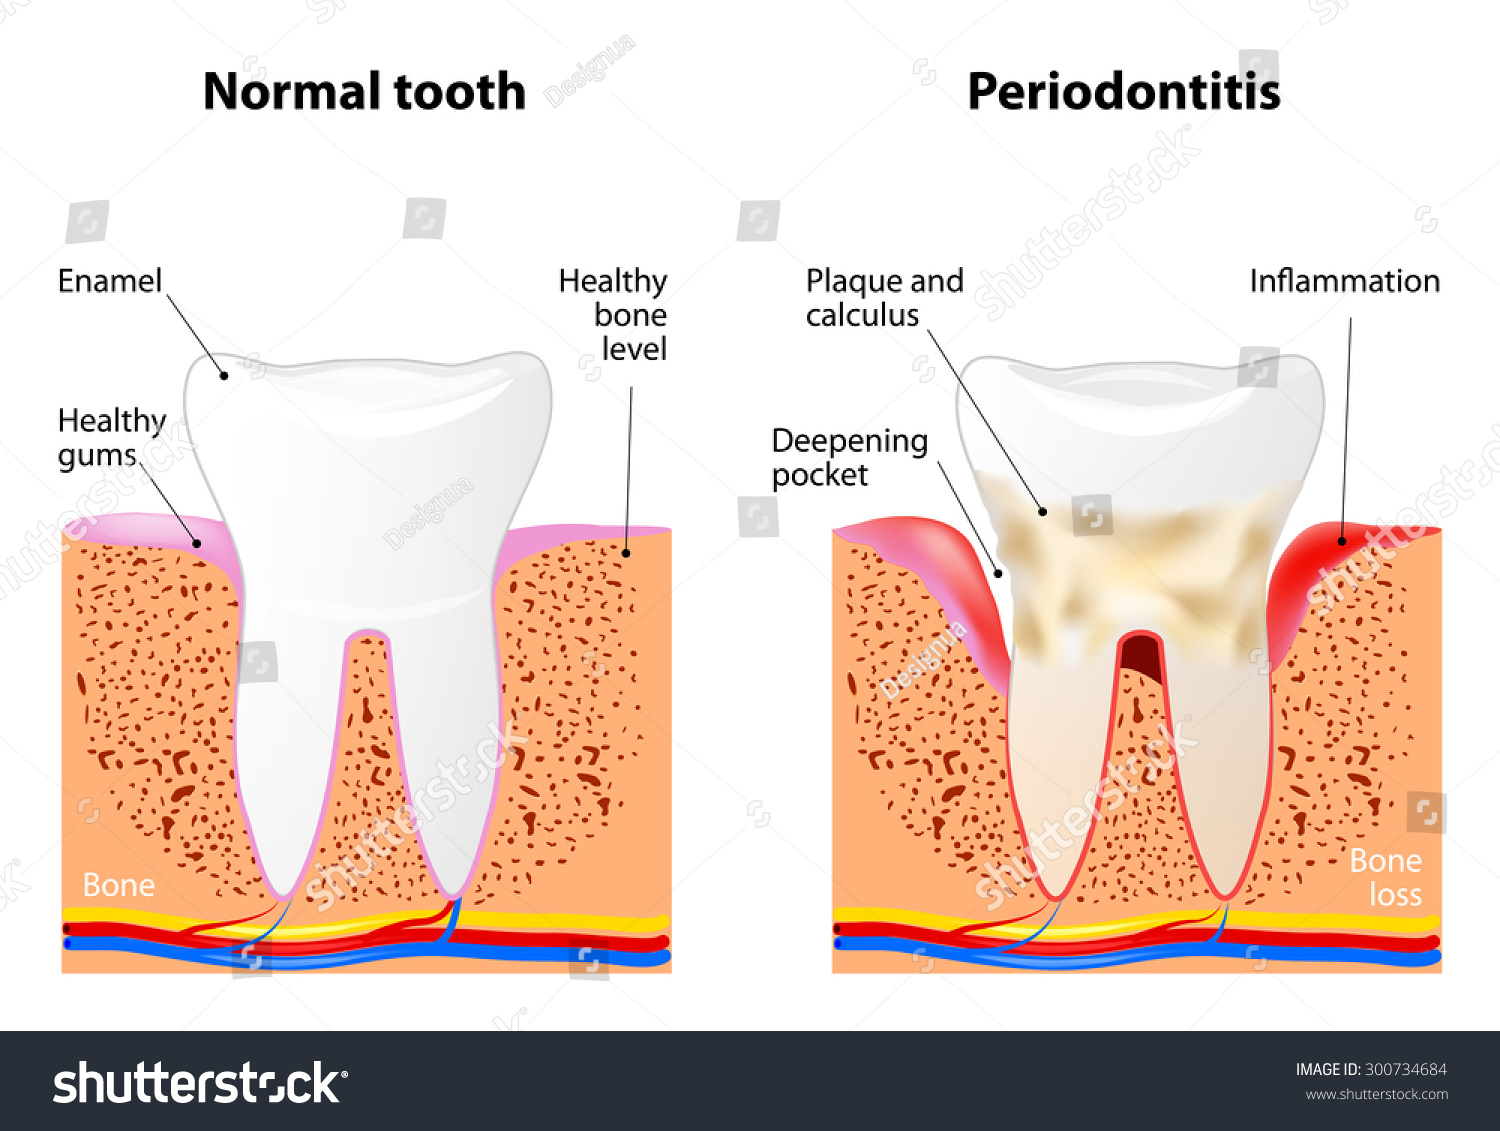 Periodontitis is a inflammatory diseases affecting the periodontium ...